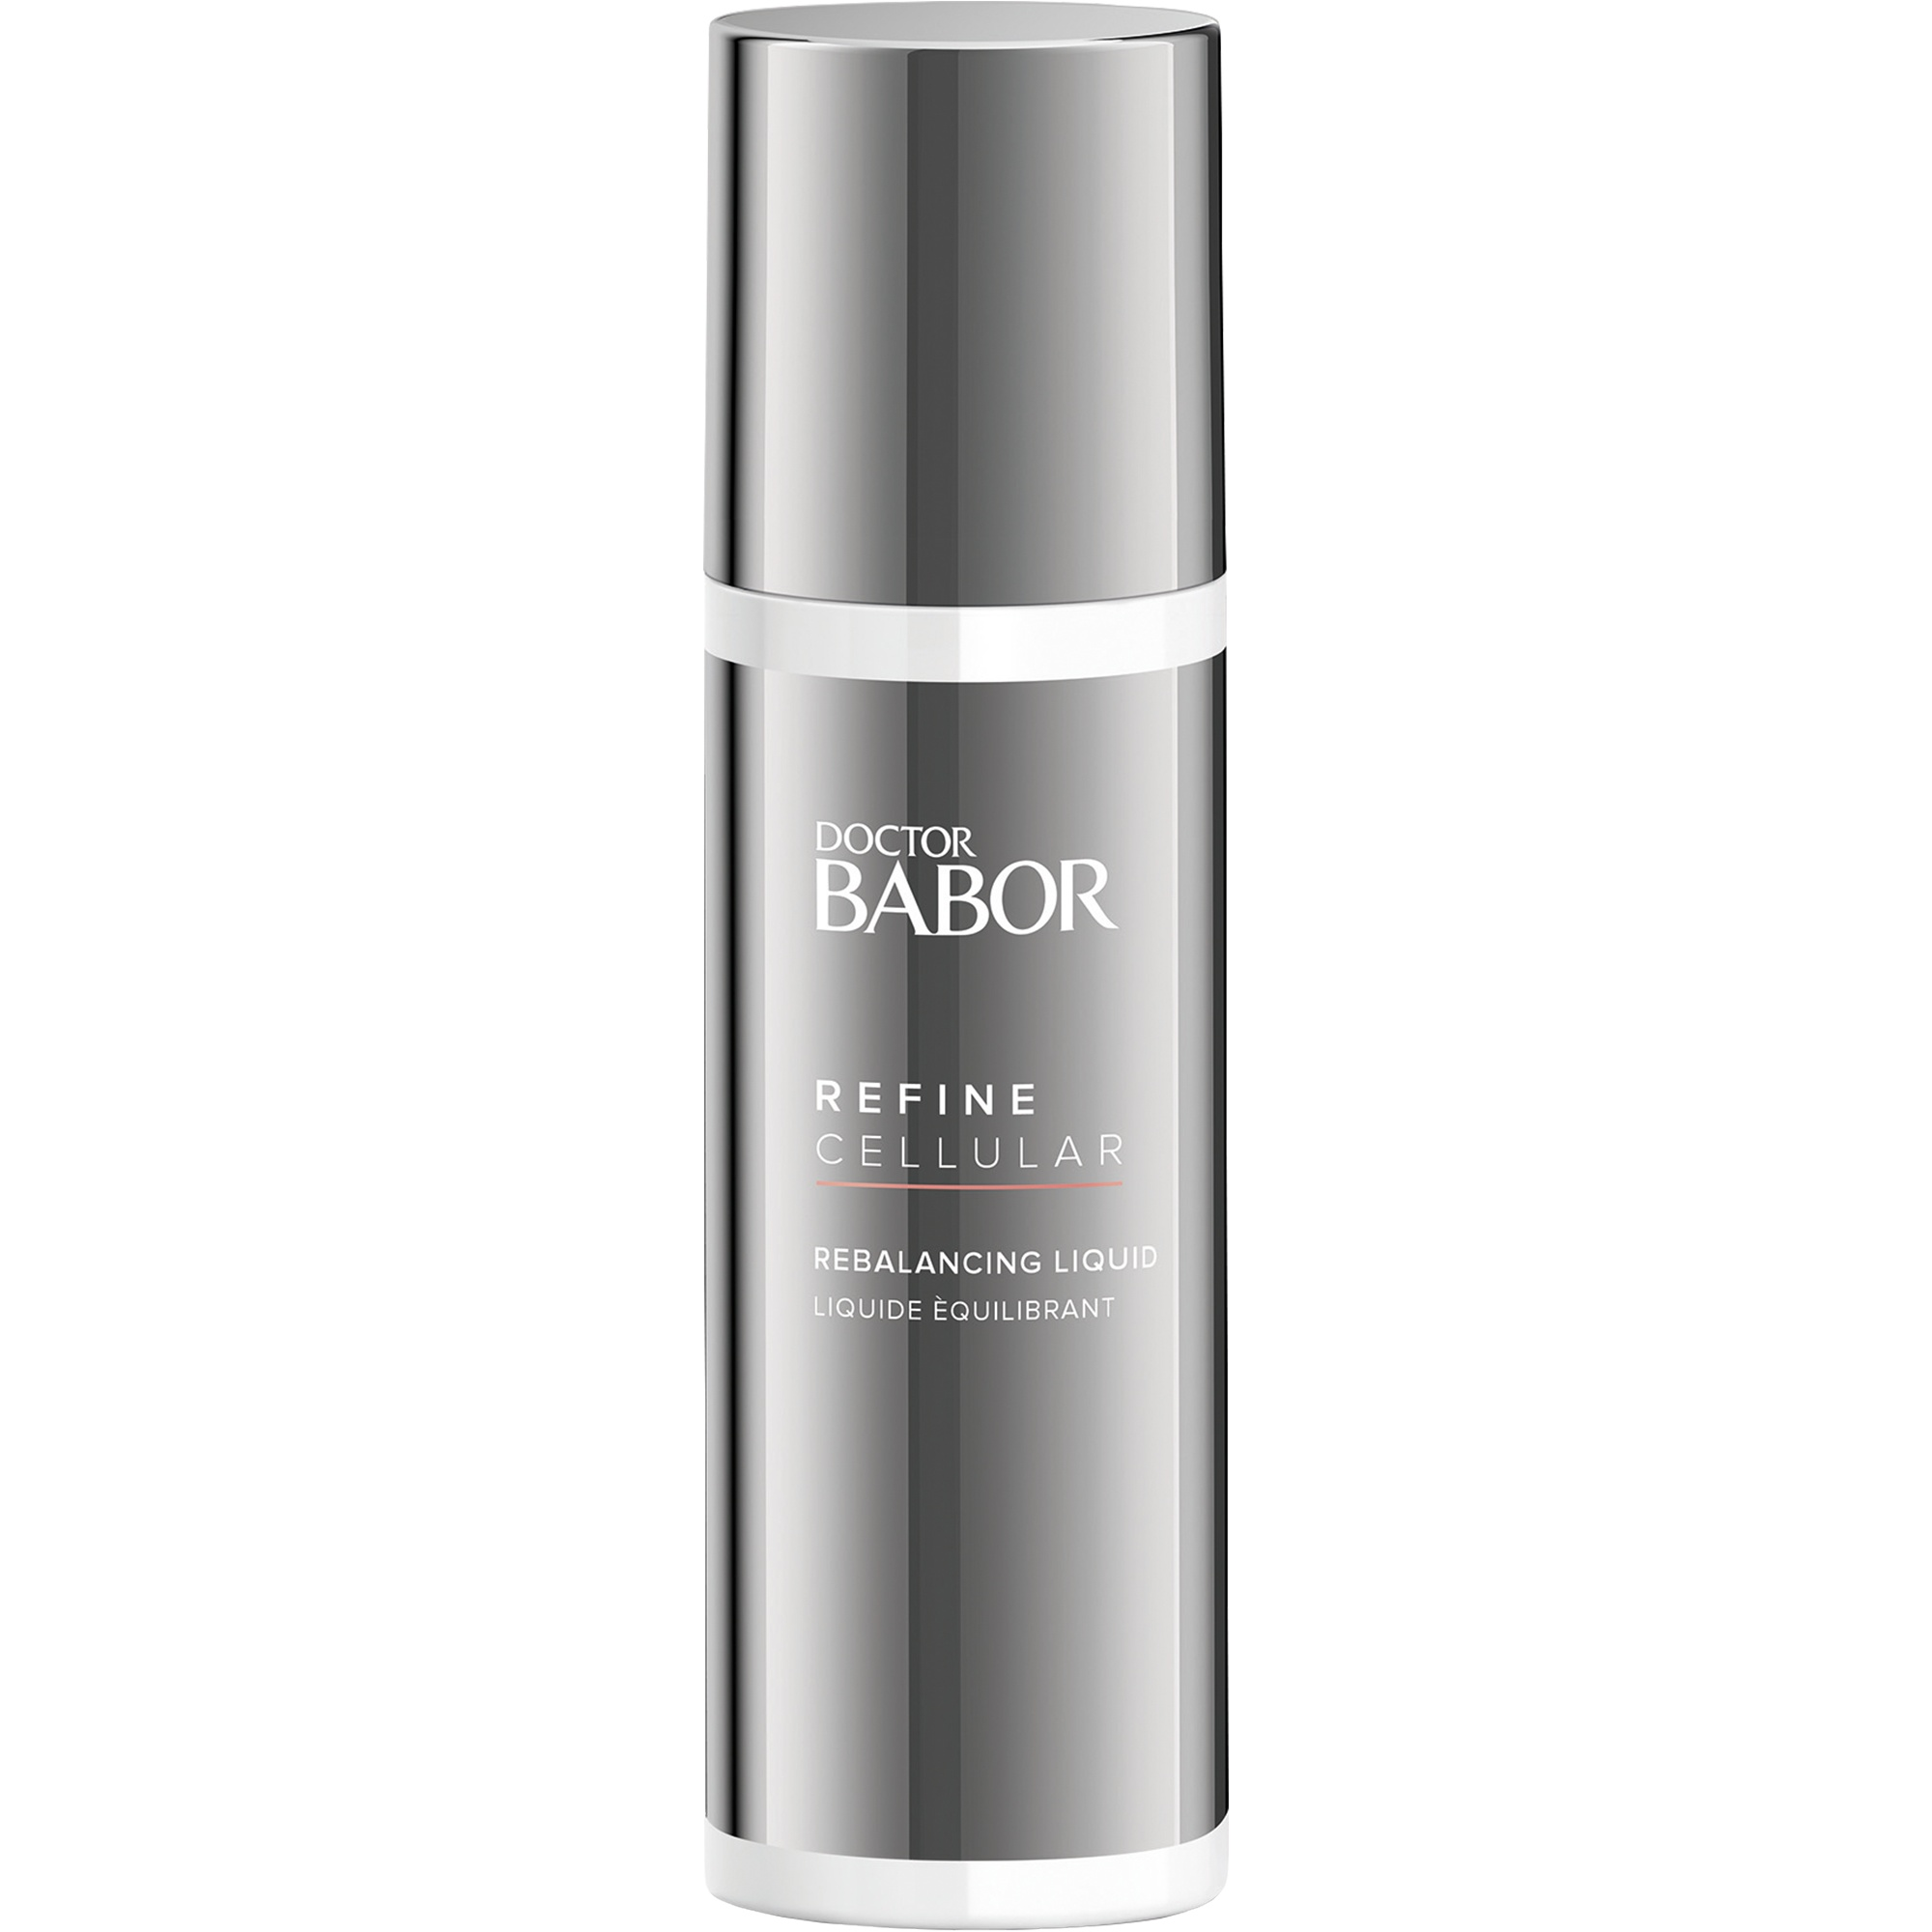 Bilde av Doctor Babor Refine Cellular Rebalancing Liquid 100 Ml